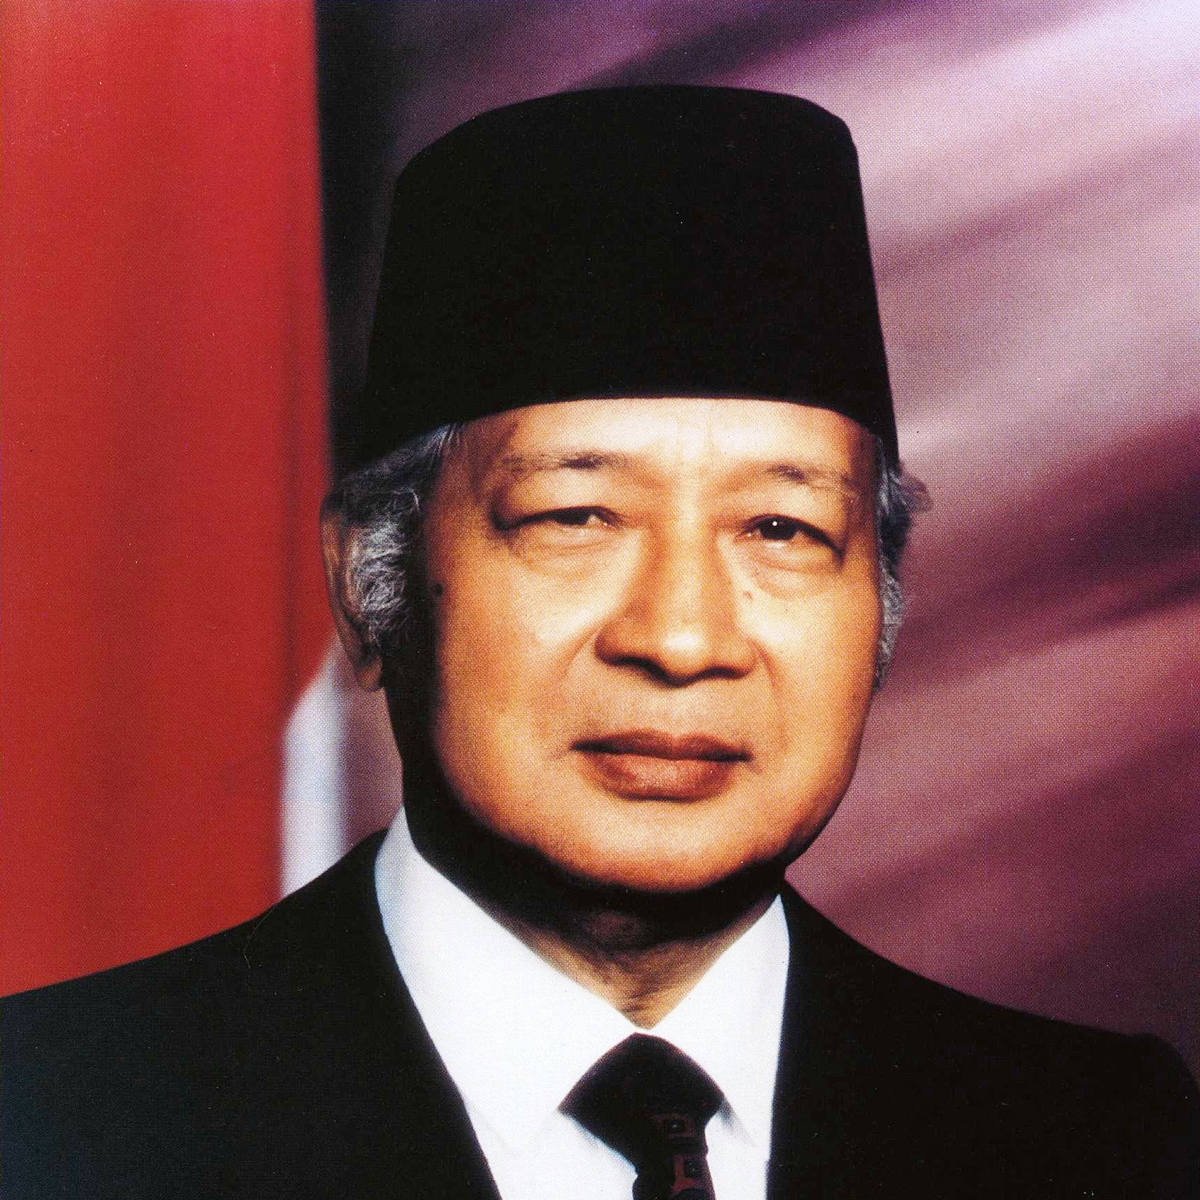 Soeharto | sumber gambar: indearchipel.wordpress.com